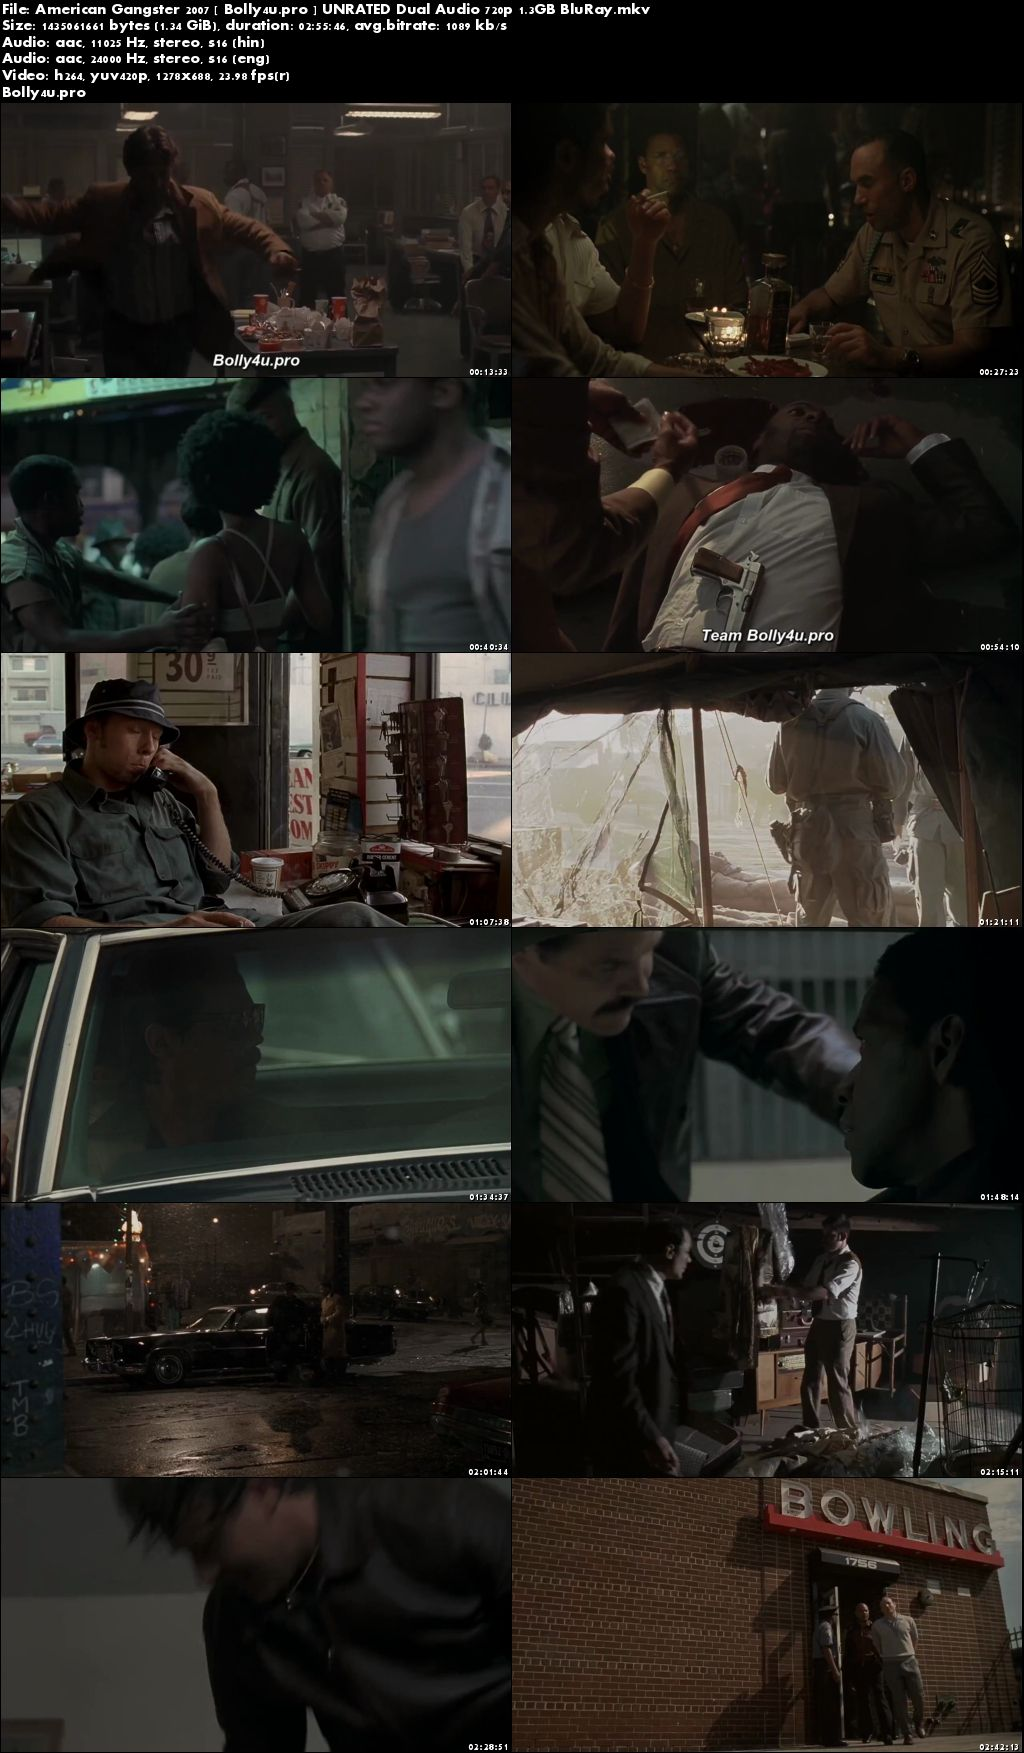 American Gangster 2007 BRRip UNRATED Hindi Dual Audio 720p Download